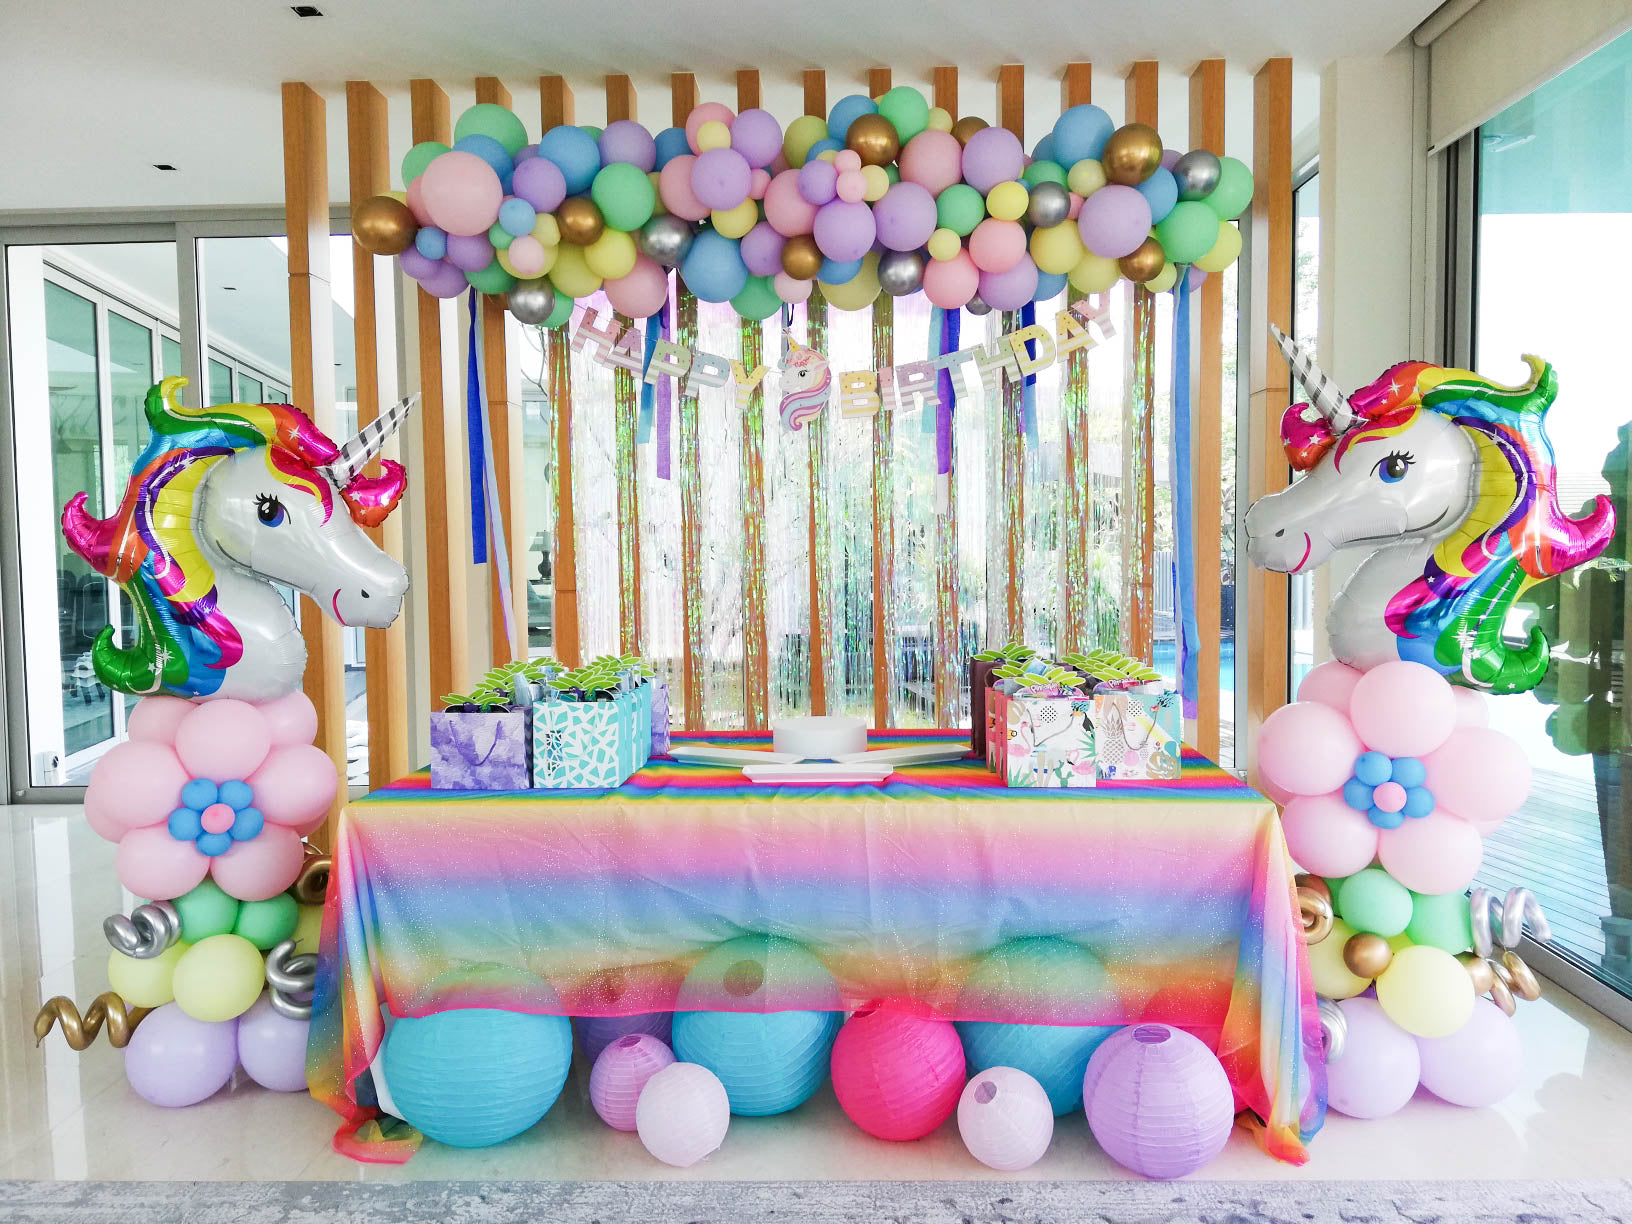 beautiful unicorn themed table decorations with mini balloon garland, happy birthday letter and lanterns. 2 big unicorn foil balloons by the side of the table.